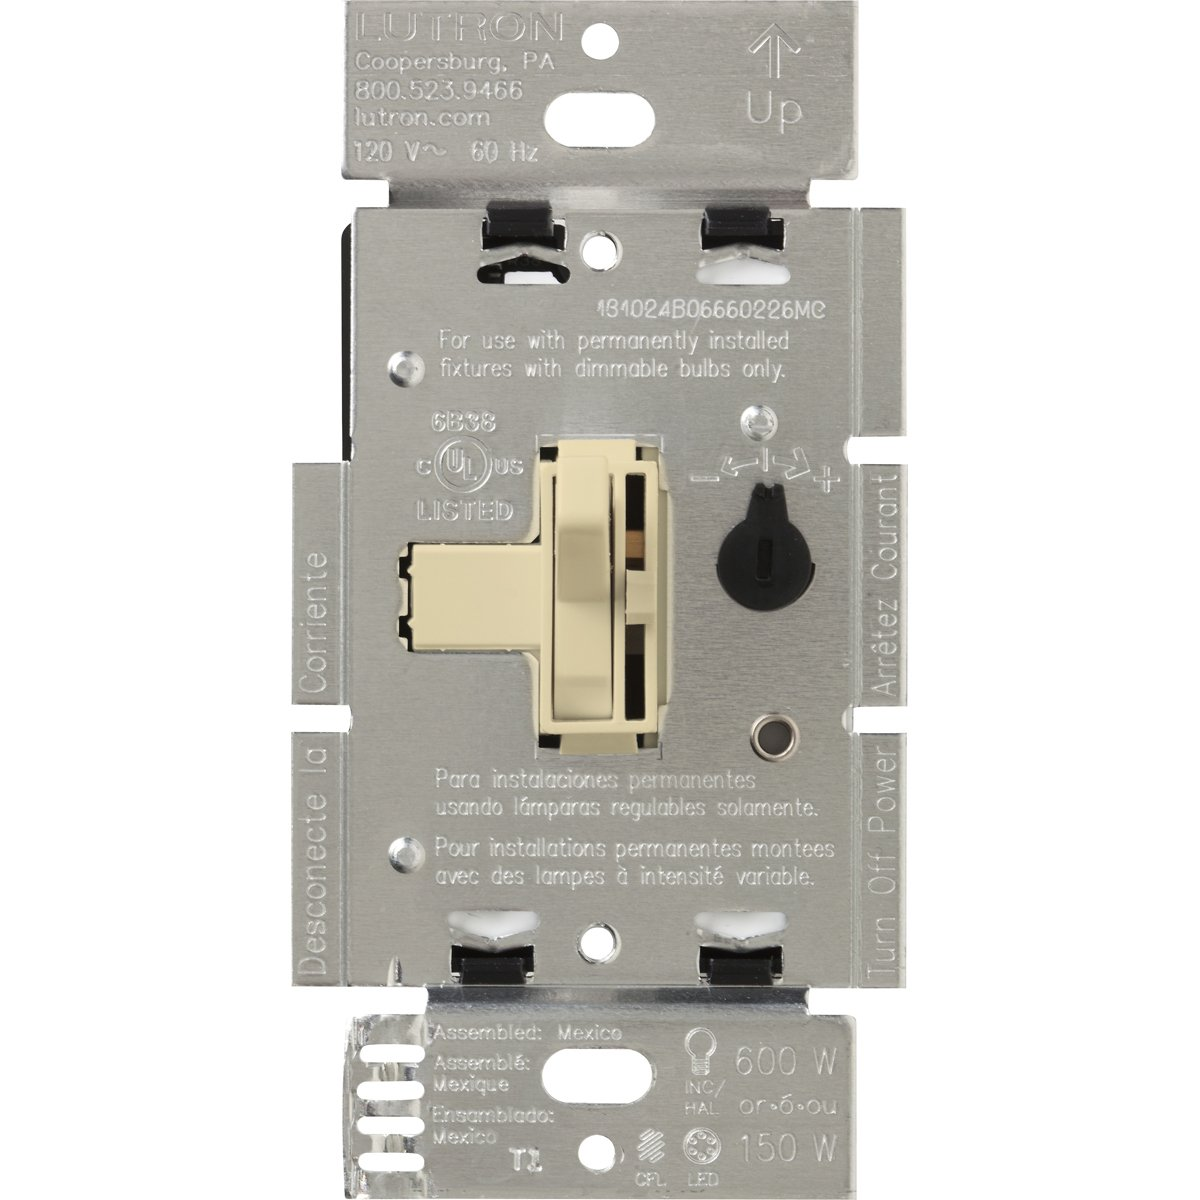 Lutron Toggler C.L Dimmer Switch for Dimmable LED, Halogen and Incandescent Bulbs, Single-Pole or 3-Way, TGCL-153PH-IV, Ivory